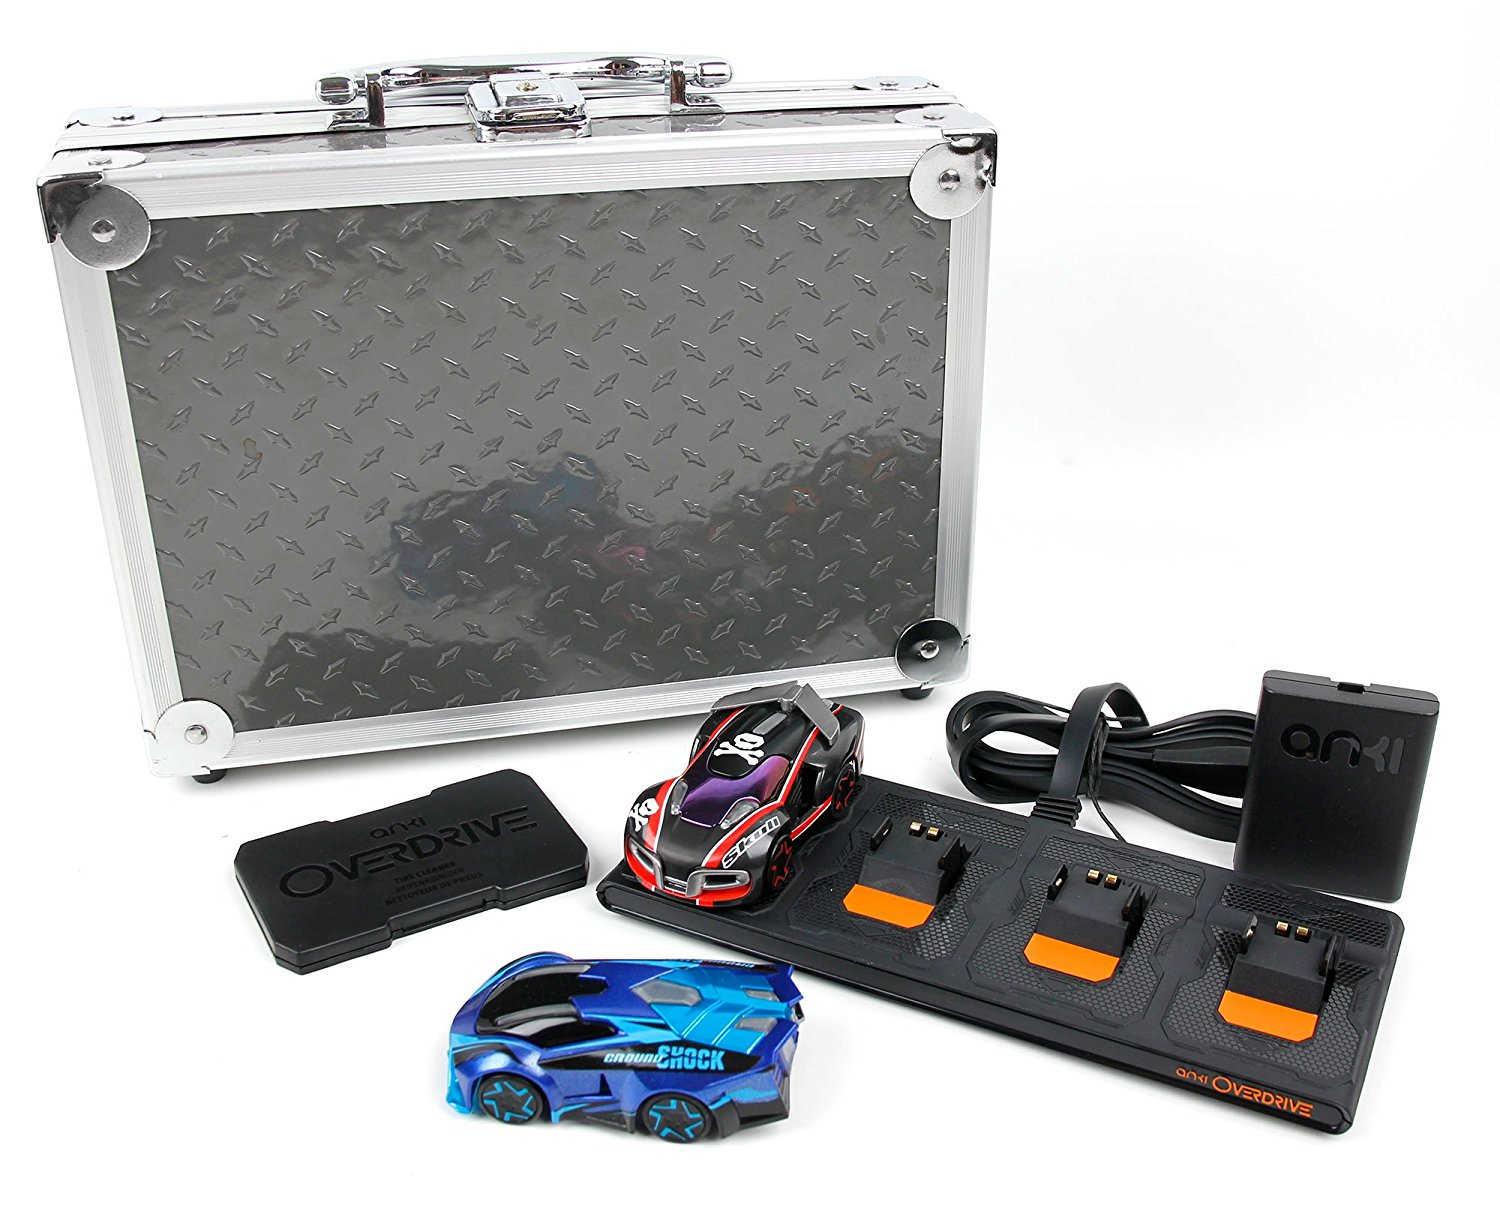 DURAGADGET Aluminium EVA Case with Customizable D.I.Y Foam Interior - for The Anki Overdrive Cars & Expansion Car Toys